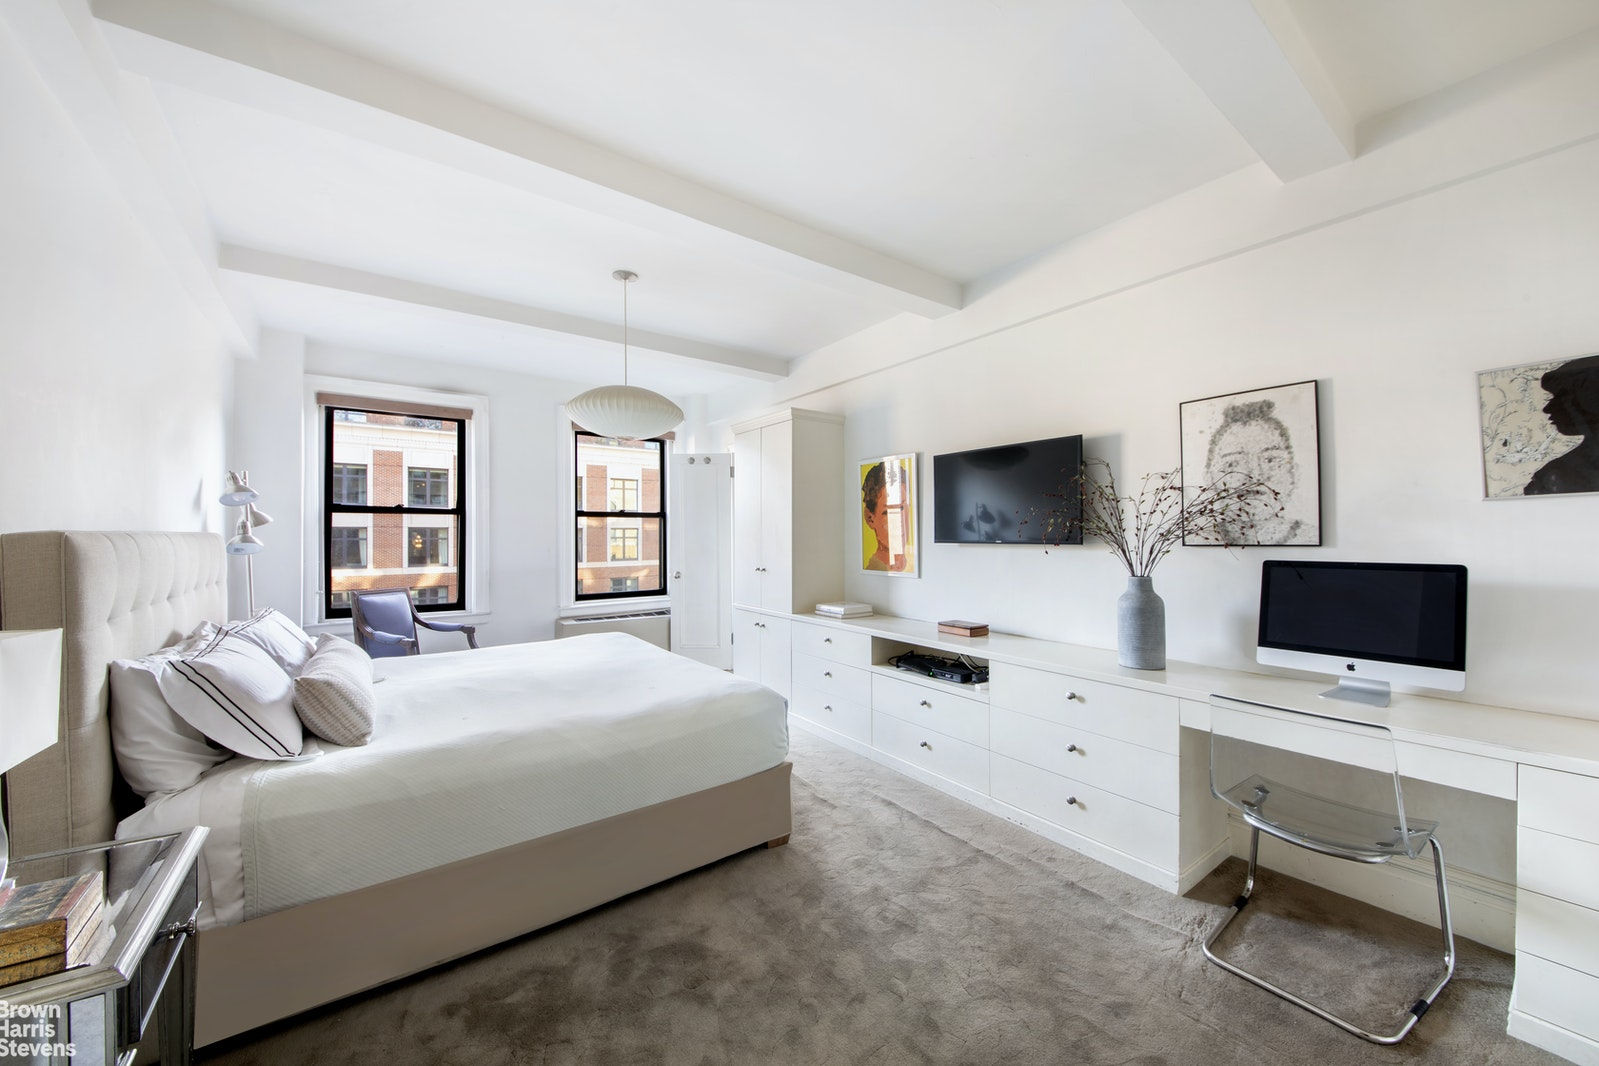 545 WEST END AVENUE 14A, Upper West Side, $3,325,000, Web #: 20040618